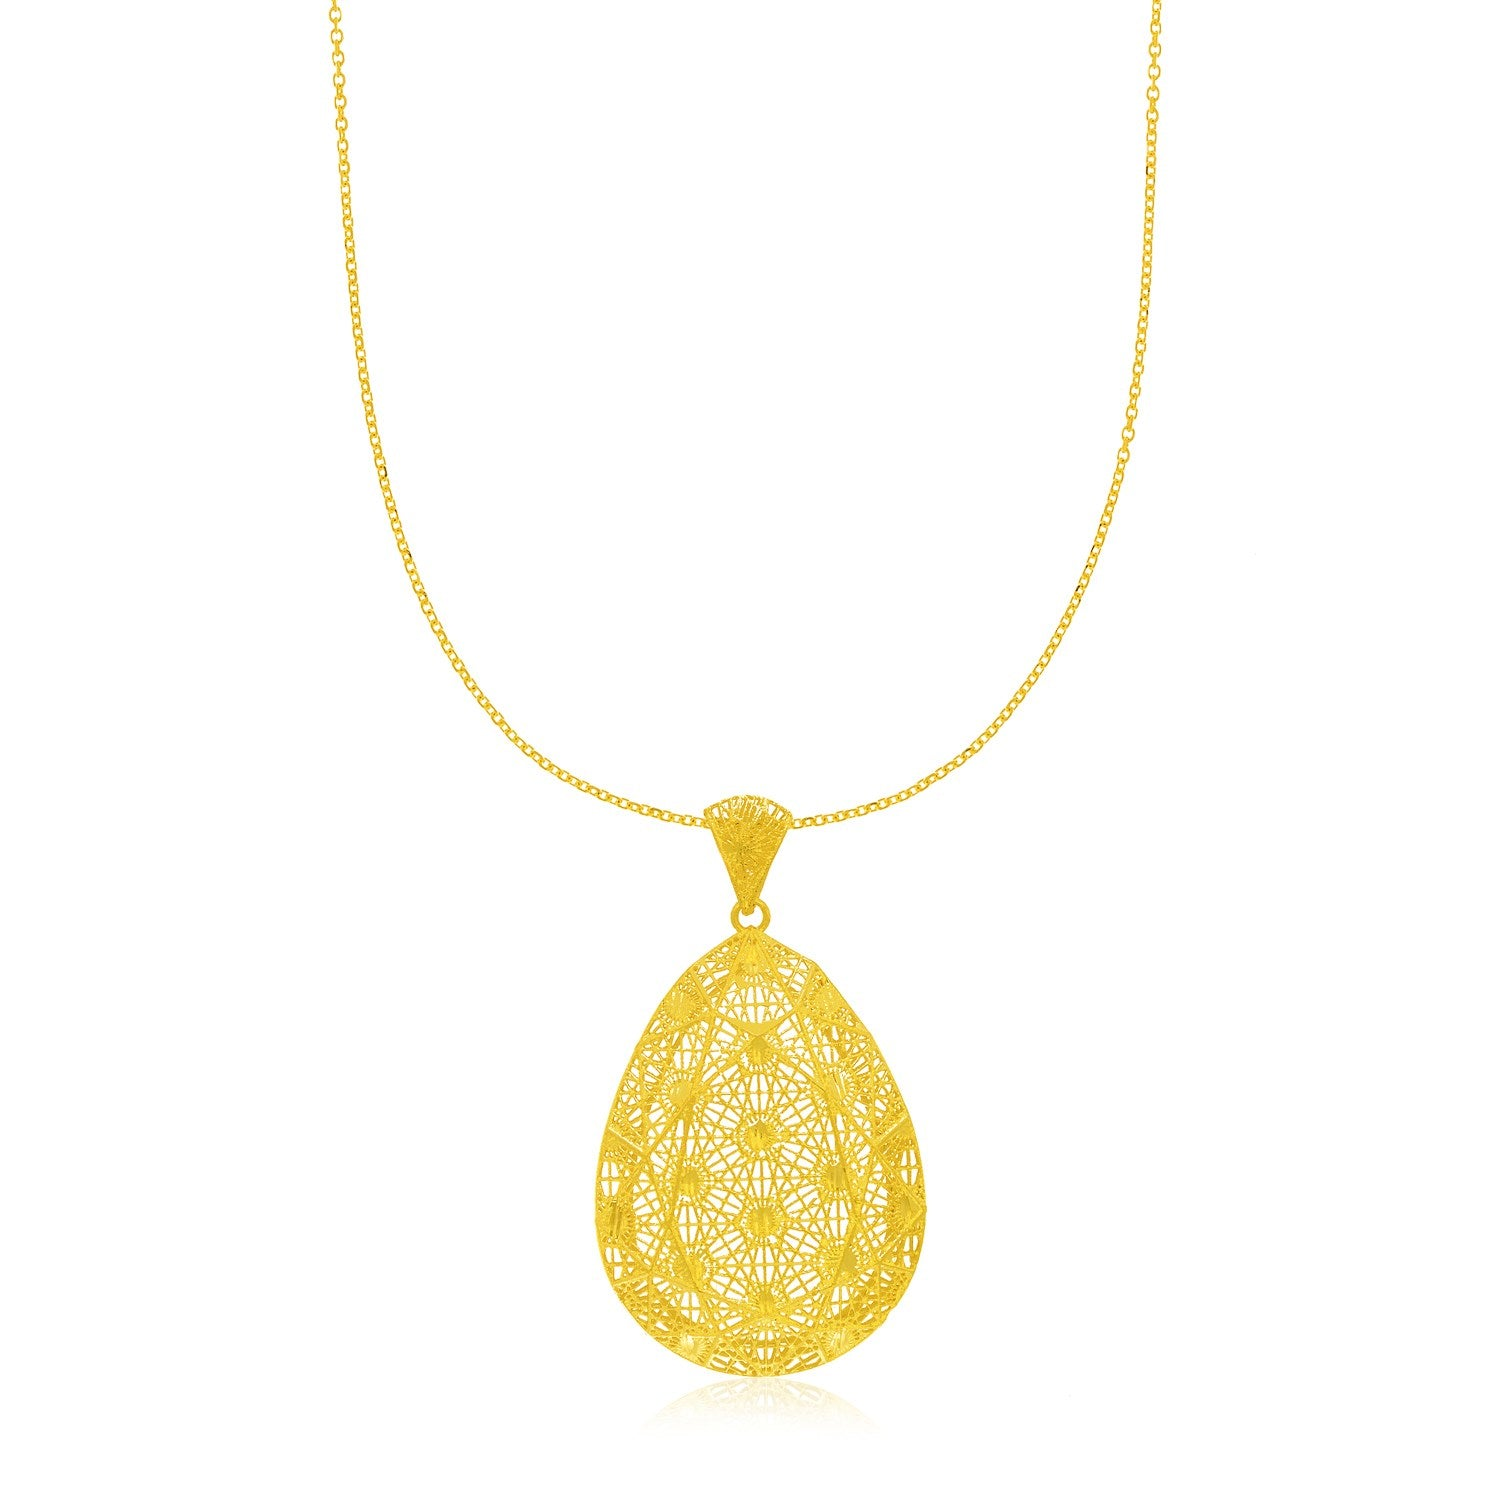 Original New York Style  14K Yellow Gold Teardrop Web Lacy Pendant